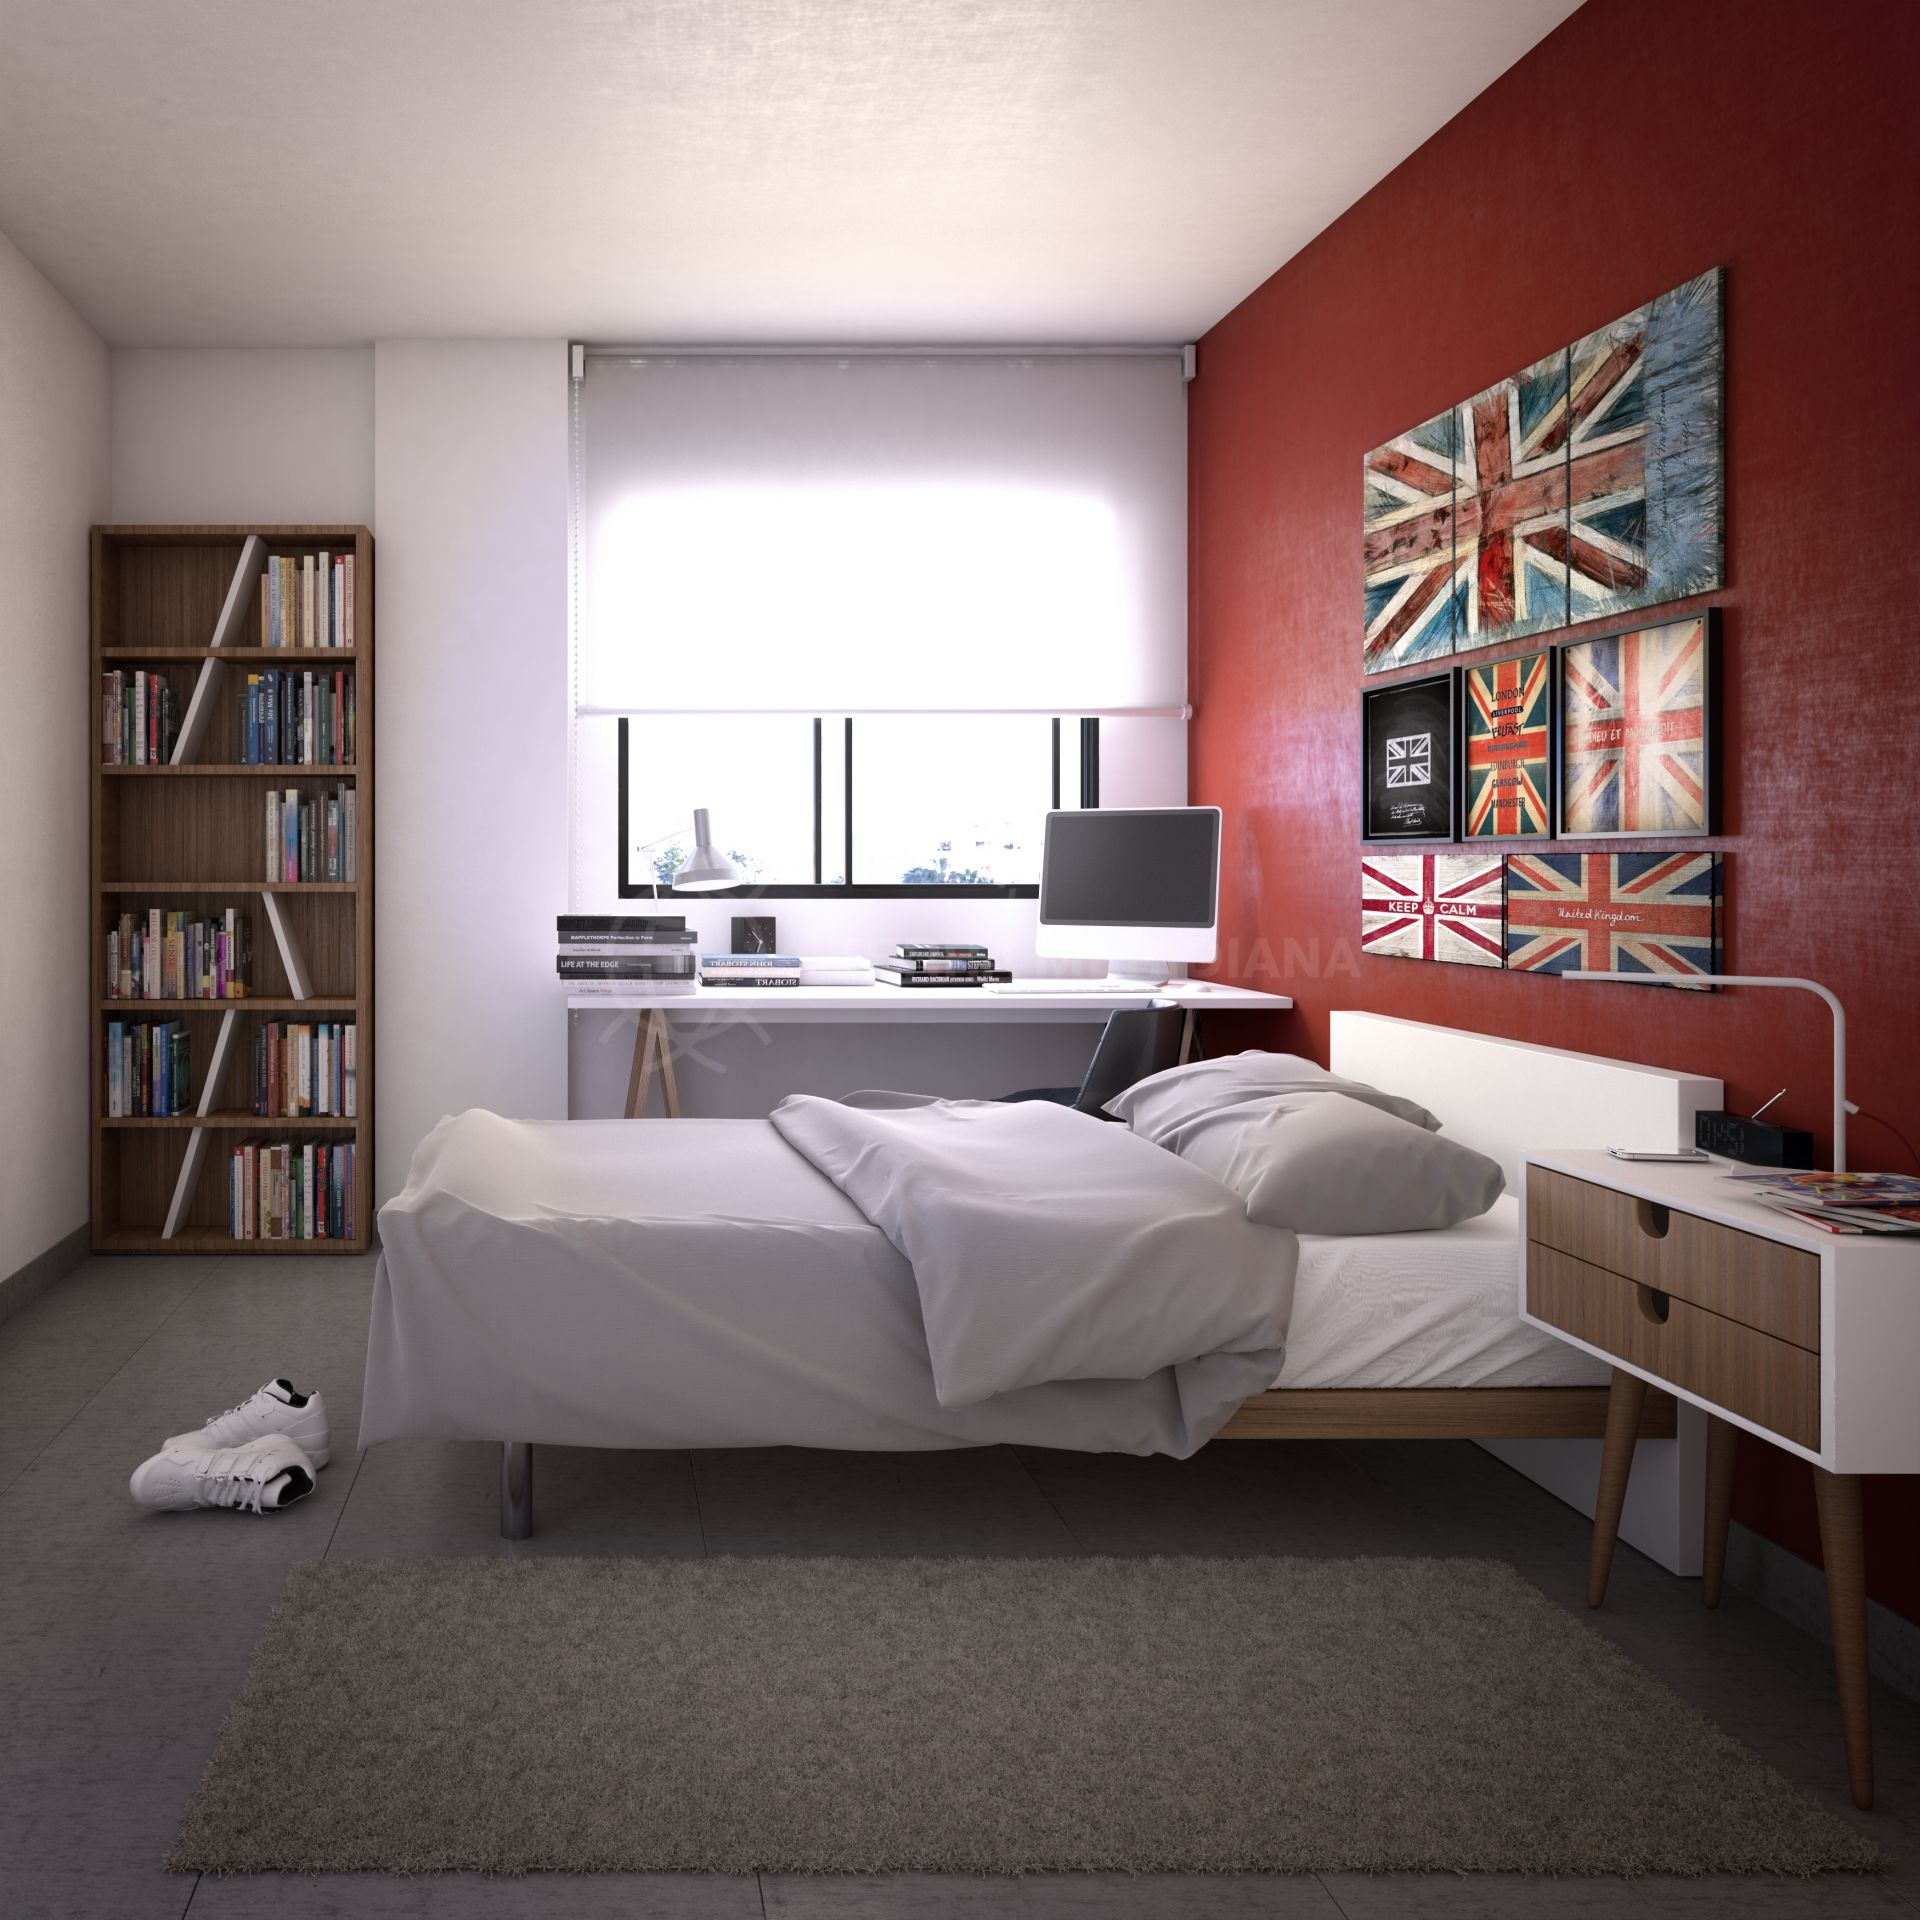 Off Plan Contemporary 2 Bedroom Apartment For Sale In A